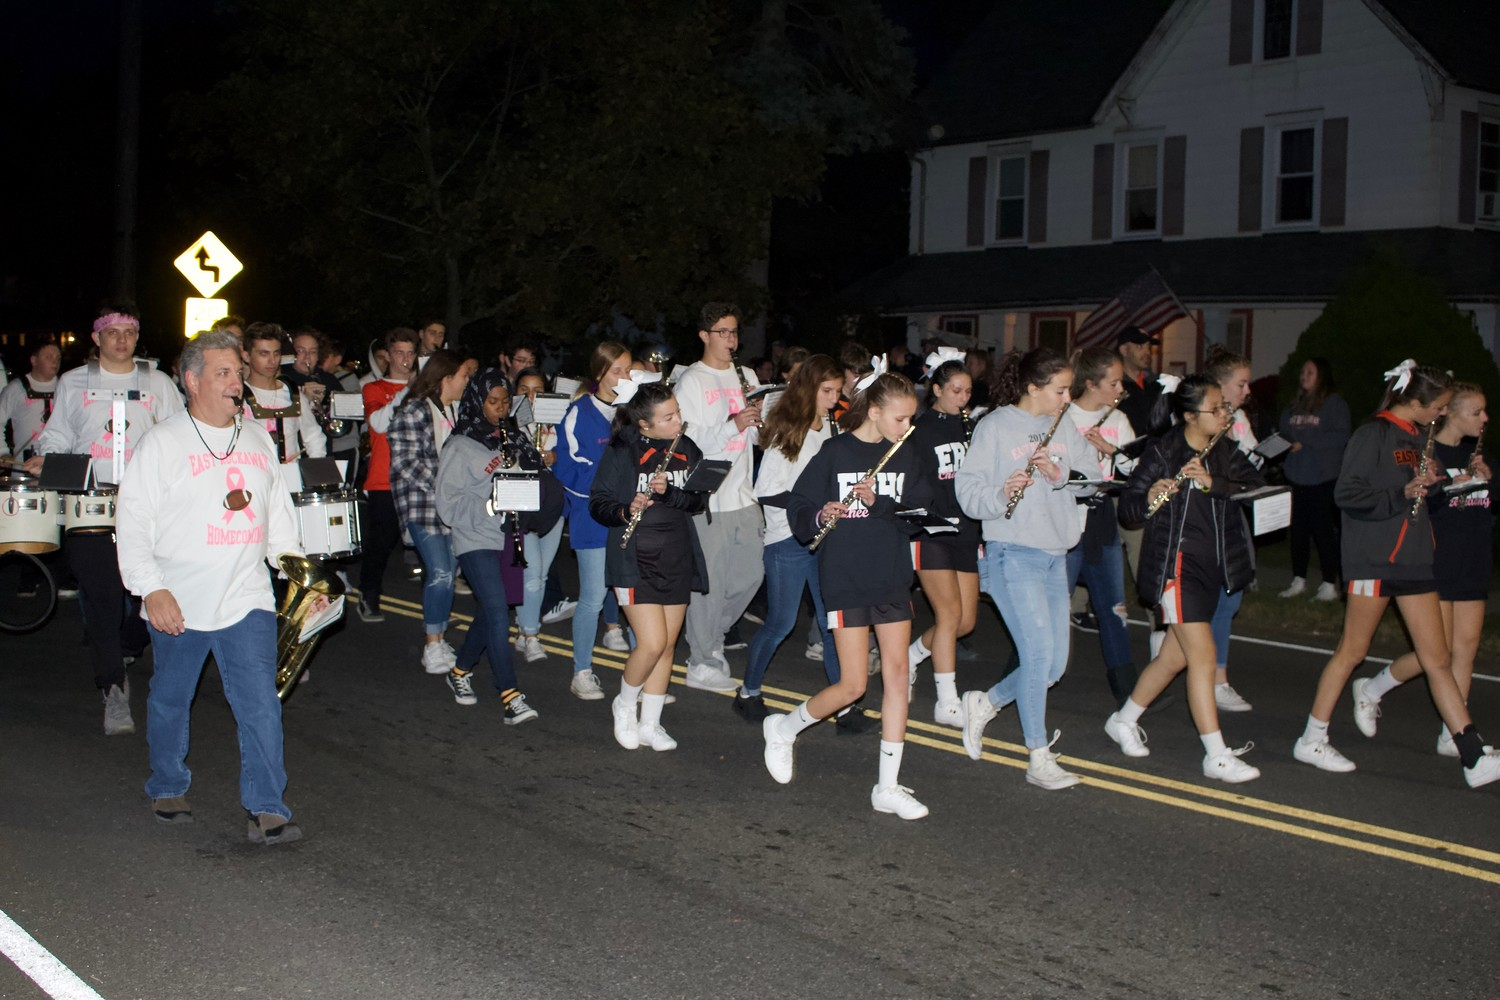 East Rockaway's high school marching band was a part of the Homecoming parade festivities. The events were a two-day celebration.